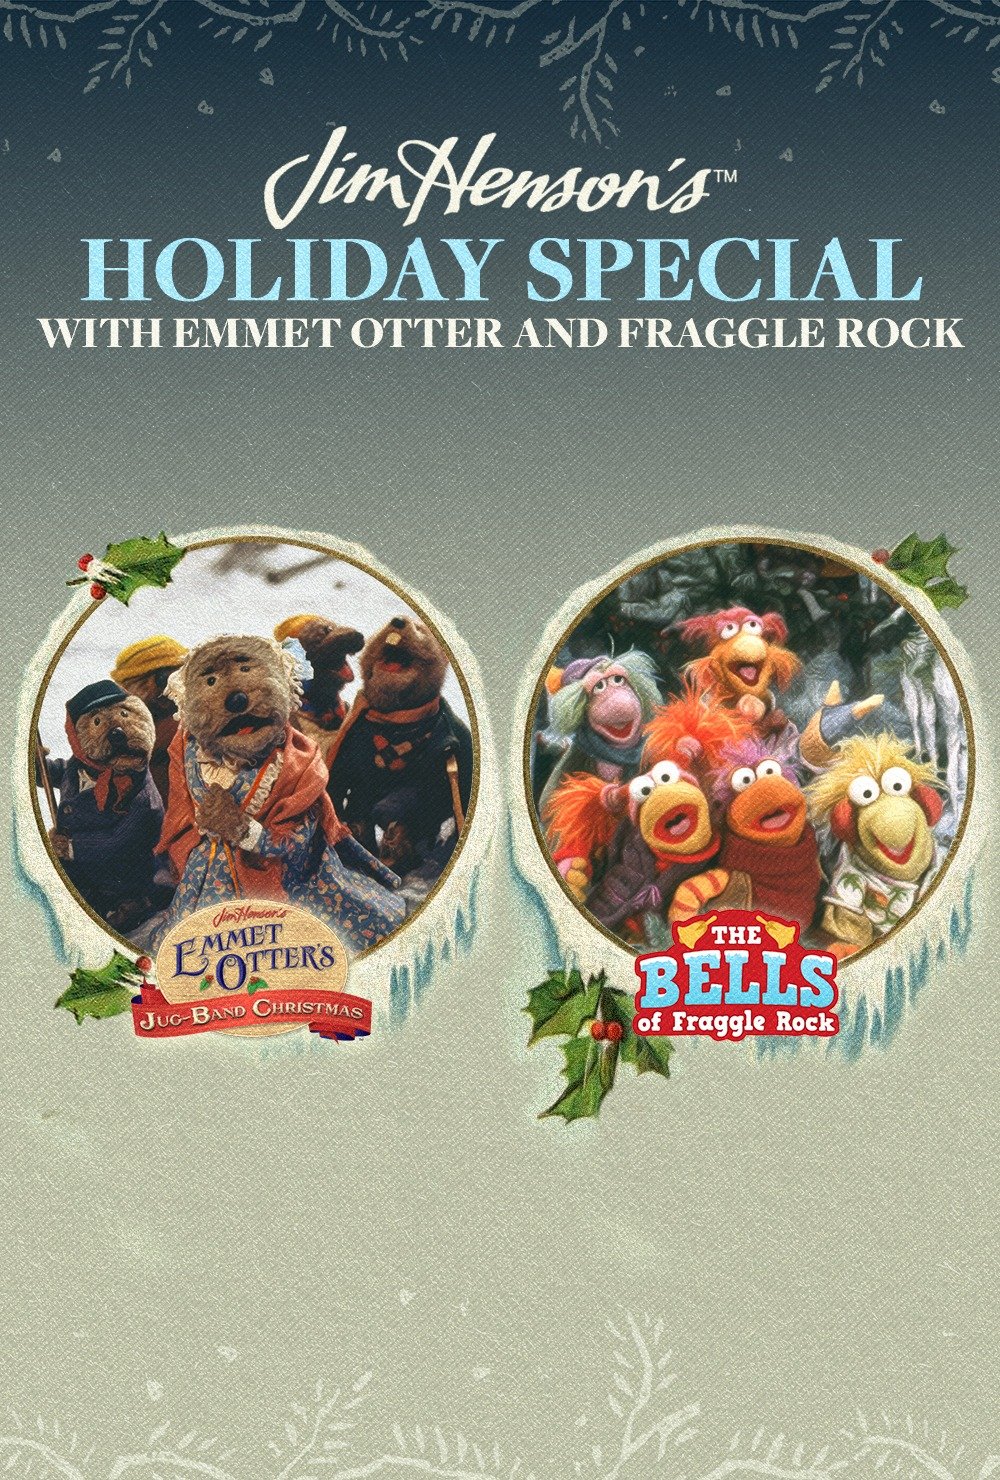 Celebrate the holidays with Jim Henson! Two beloved specials have been remastered and are coming to the big screen, Emmet Otter's Jug-Band Christmas and The Bells of Fraggle Rock. The event includes an all-new featurette with a special guest!    Other showtimes:  December 10 @ 1, 4PM, December 16 @ 1PM at various theaters